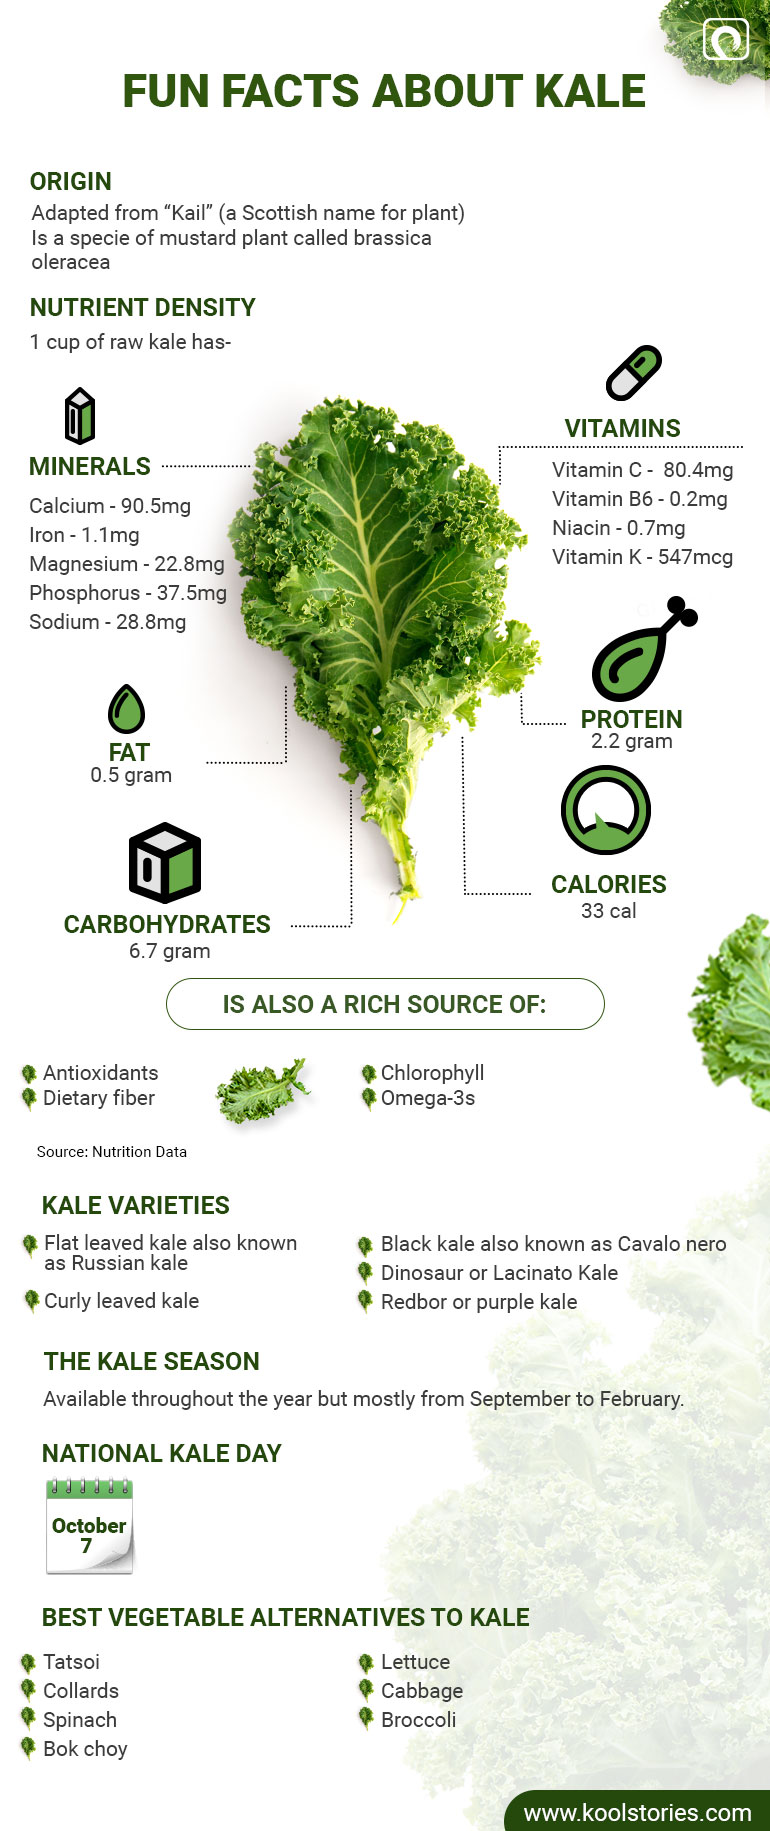 Fun facts about Kale